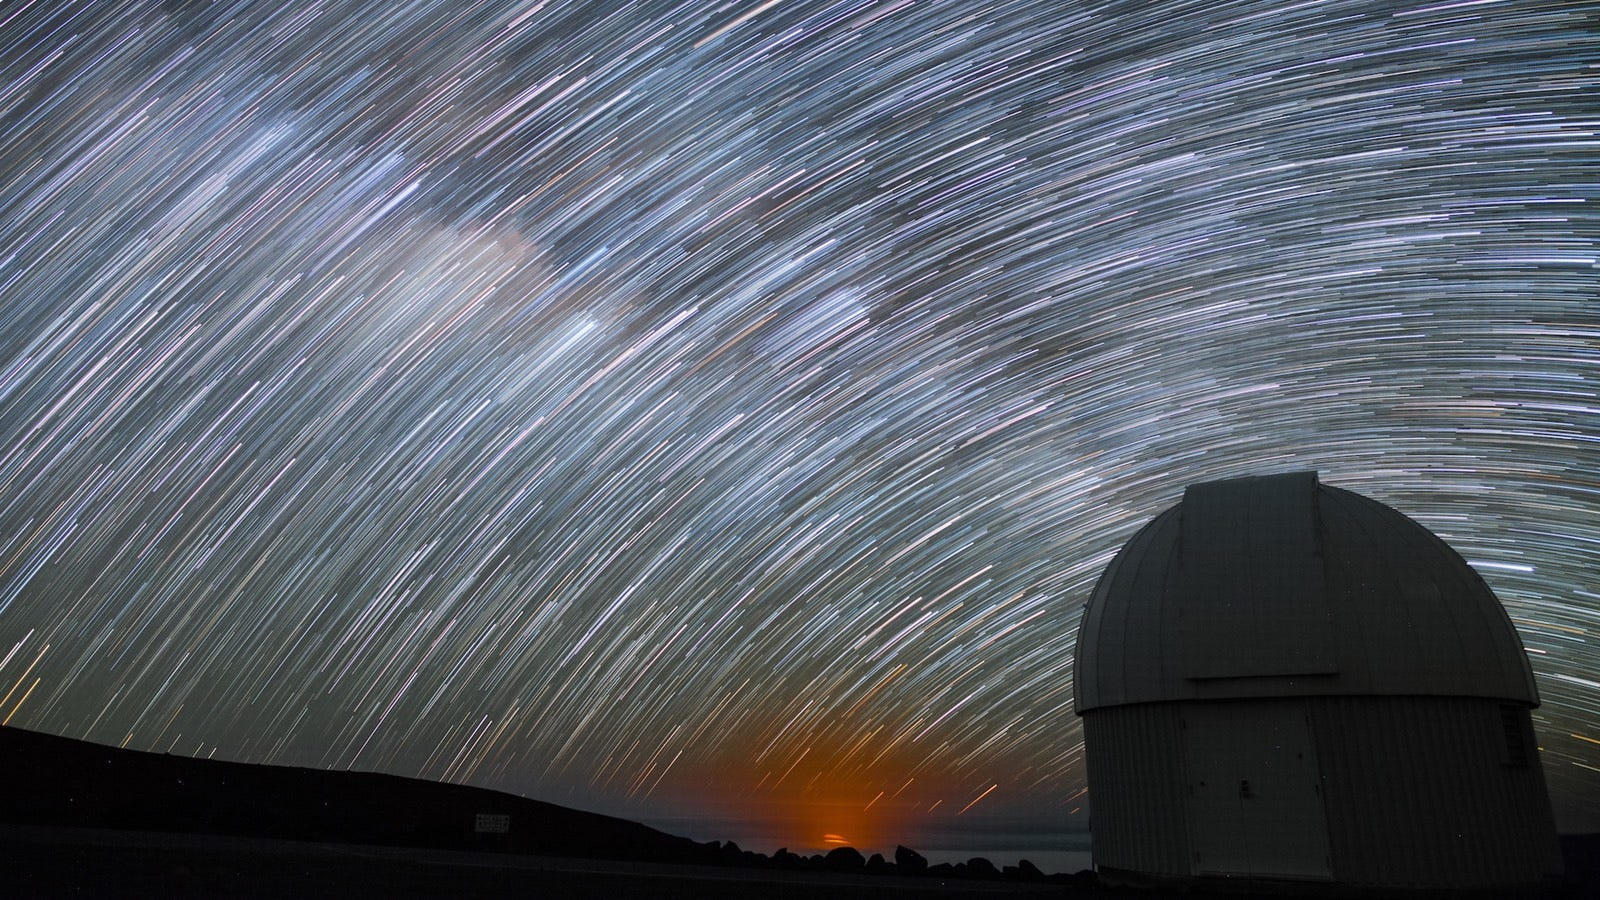 Check Out This Mesmerizing Timelapse of the Night Sky Above Hawaii